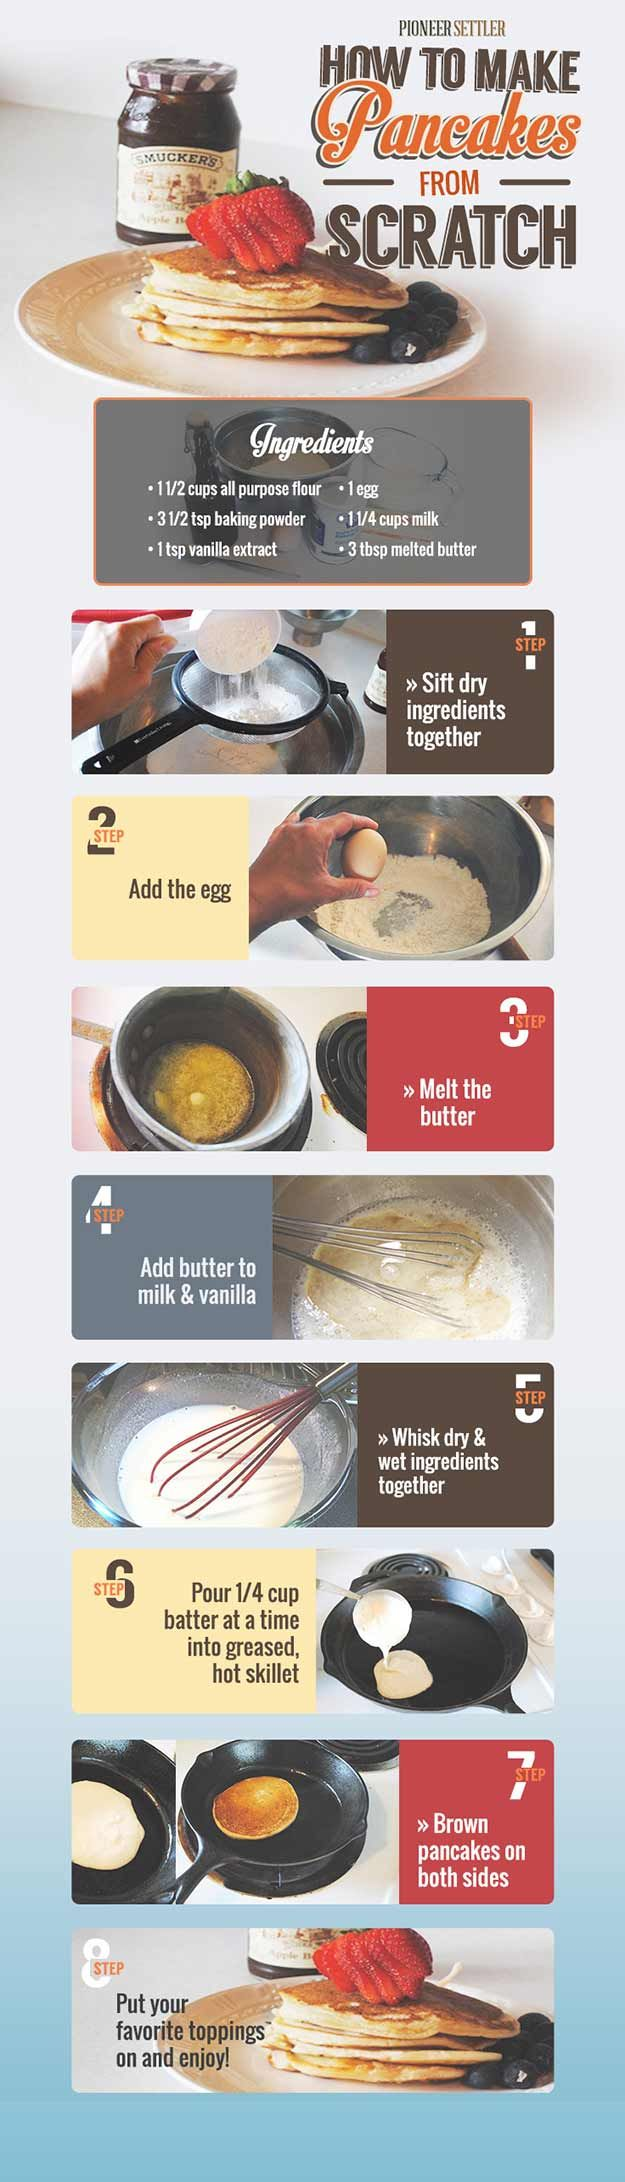 DIY Homemade pancake recipe, how to make pancakes from scratch. Homesteading recipes. | http://pioneersettler.com/how-to-make-pancakes-from-scratch/